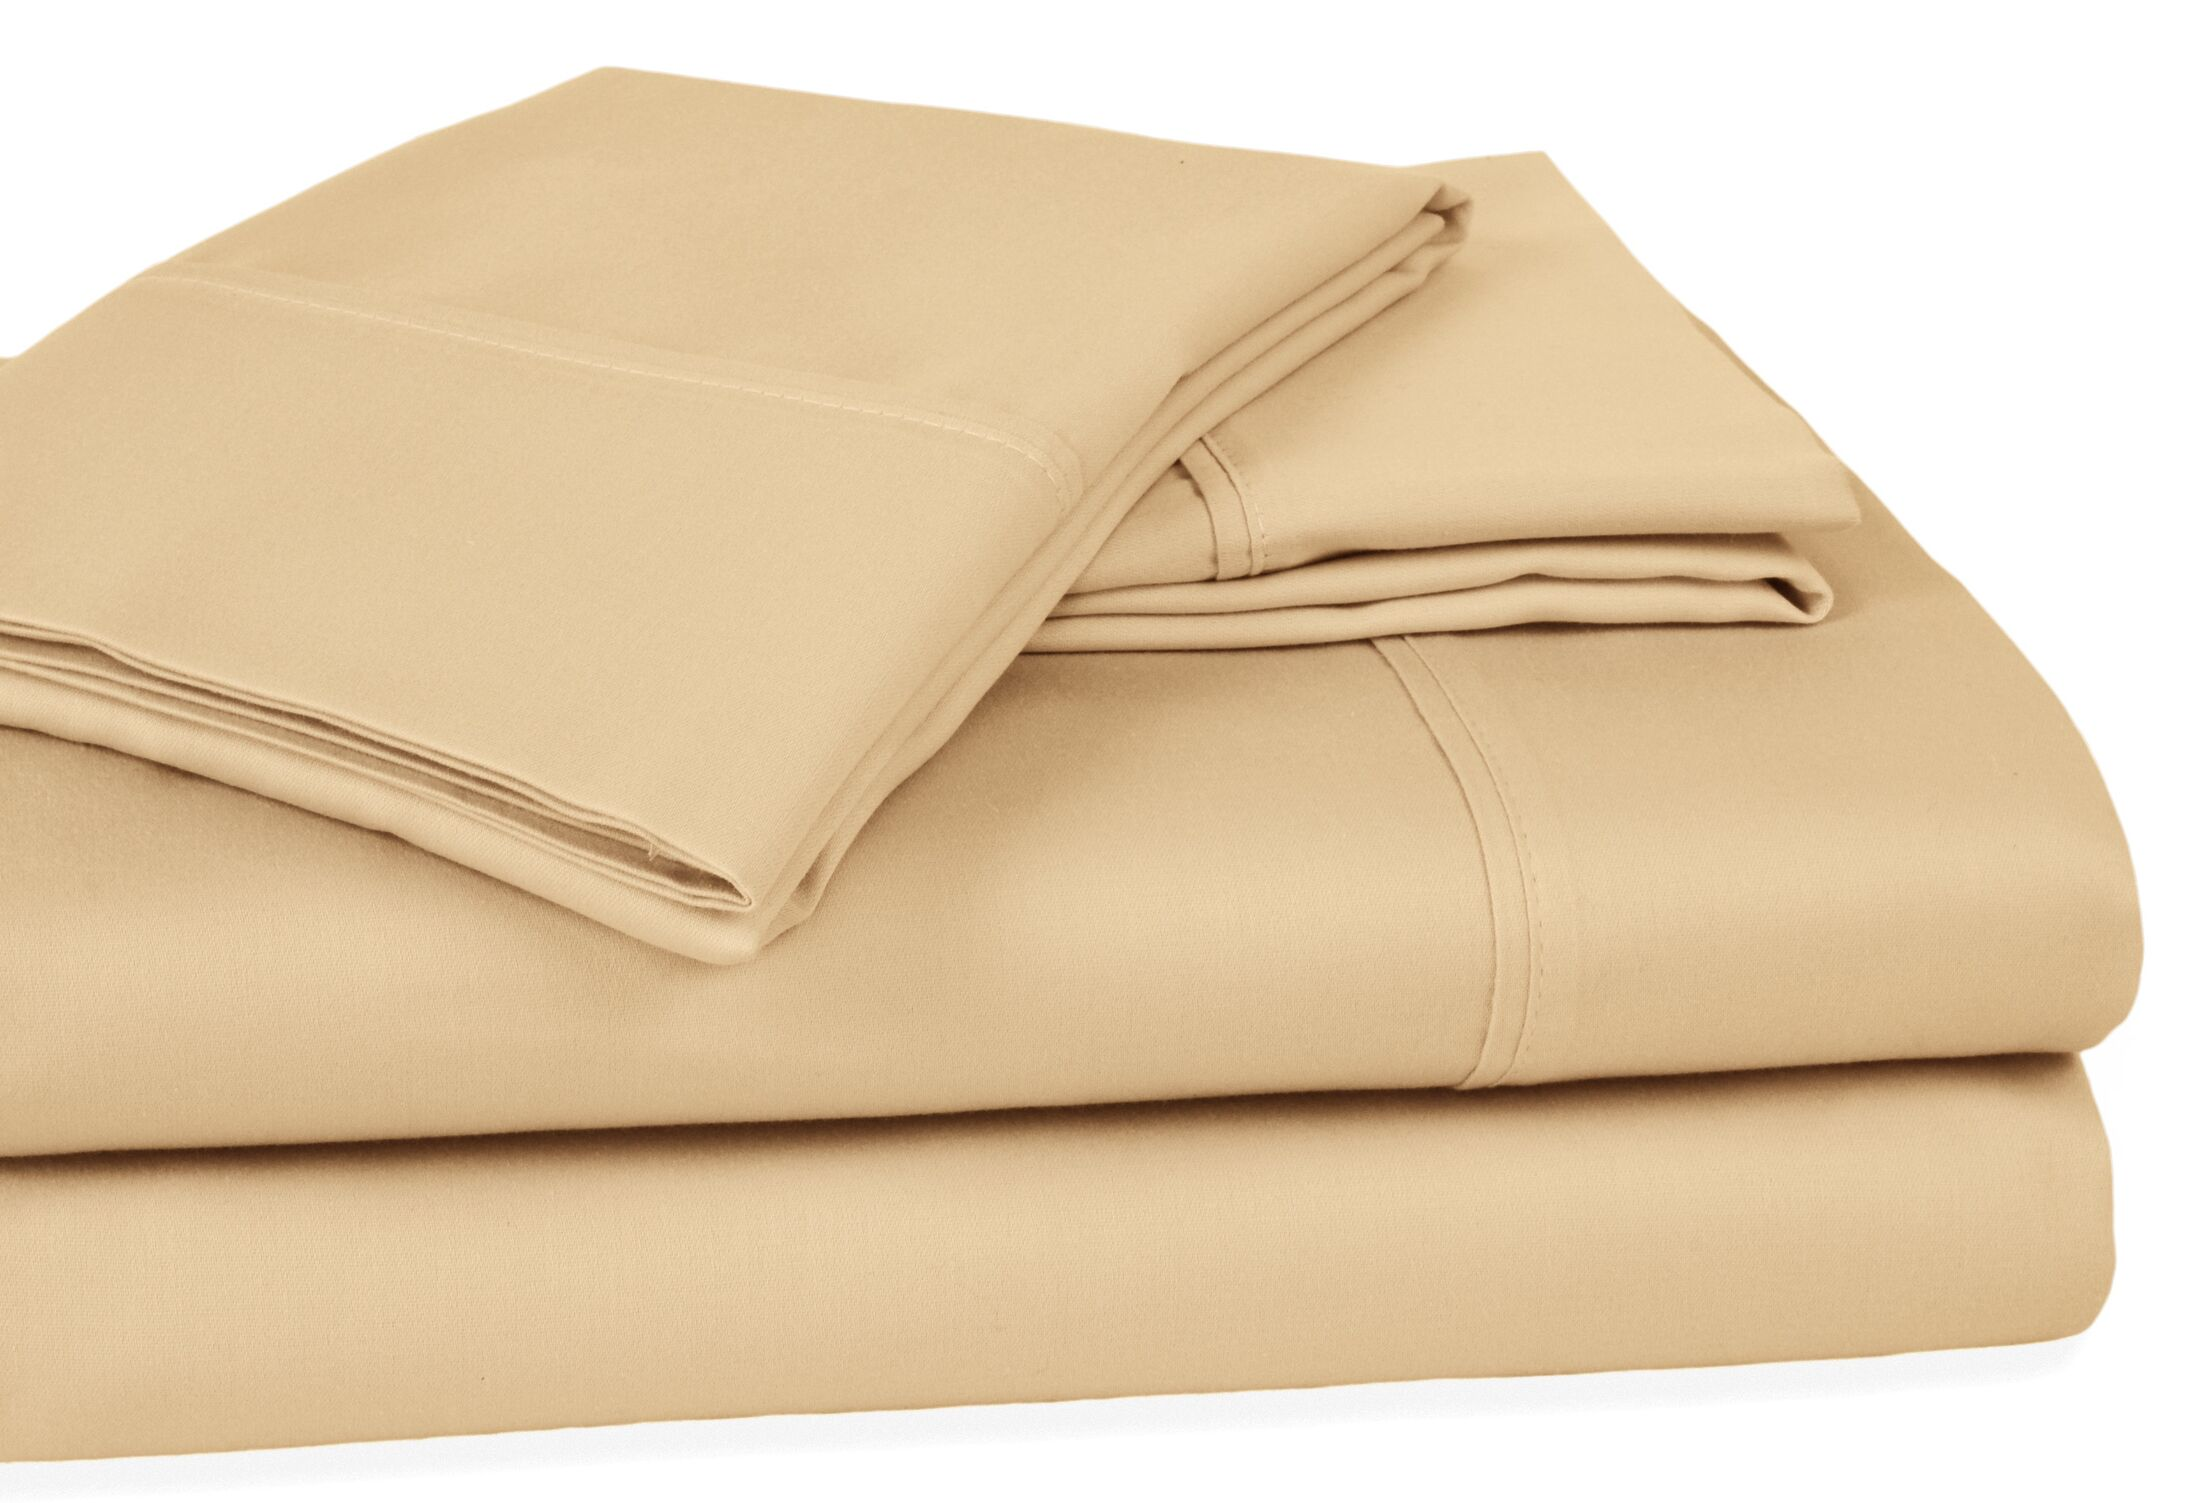 Whalers Ultra Soft Hypoallergenic 400 Thread Count 100% Cotton Sheet Set Color: Beige, Size: Queen